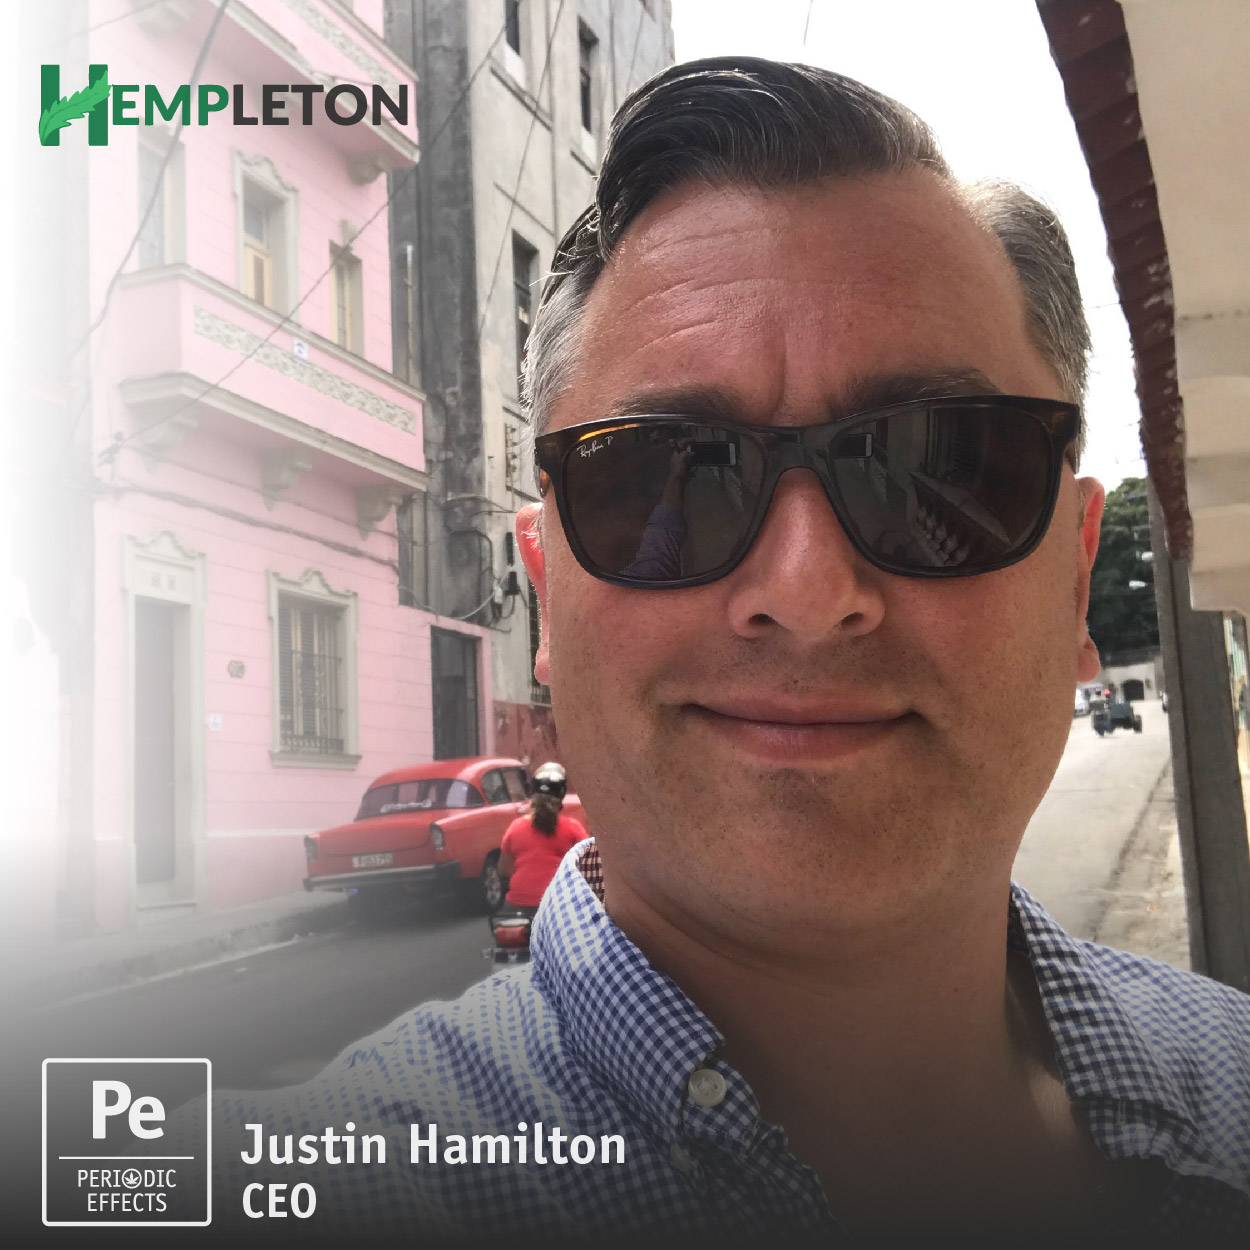 Justin Hamilton, CEO and President of Hempleton Investment Group, The Hemp Farmacy, Hope Extracts and more in the North Carolina Hemp CBD Market